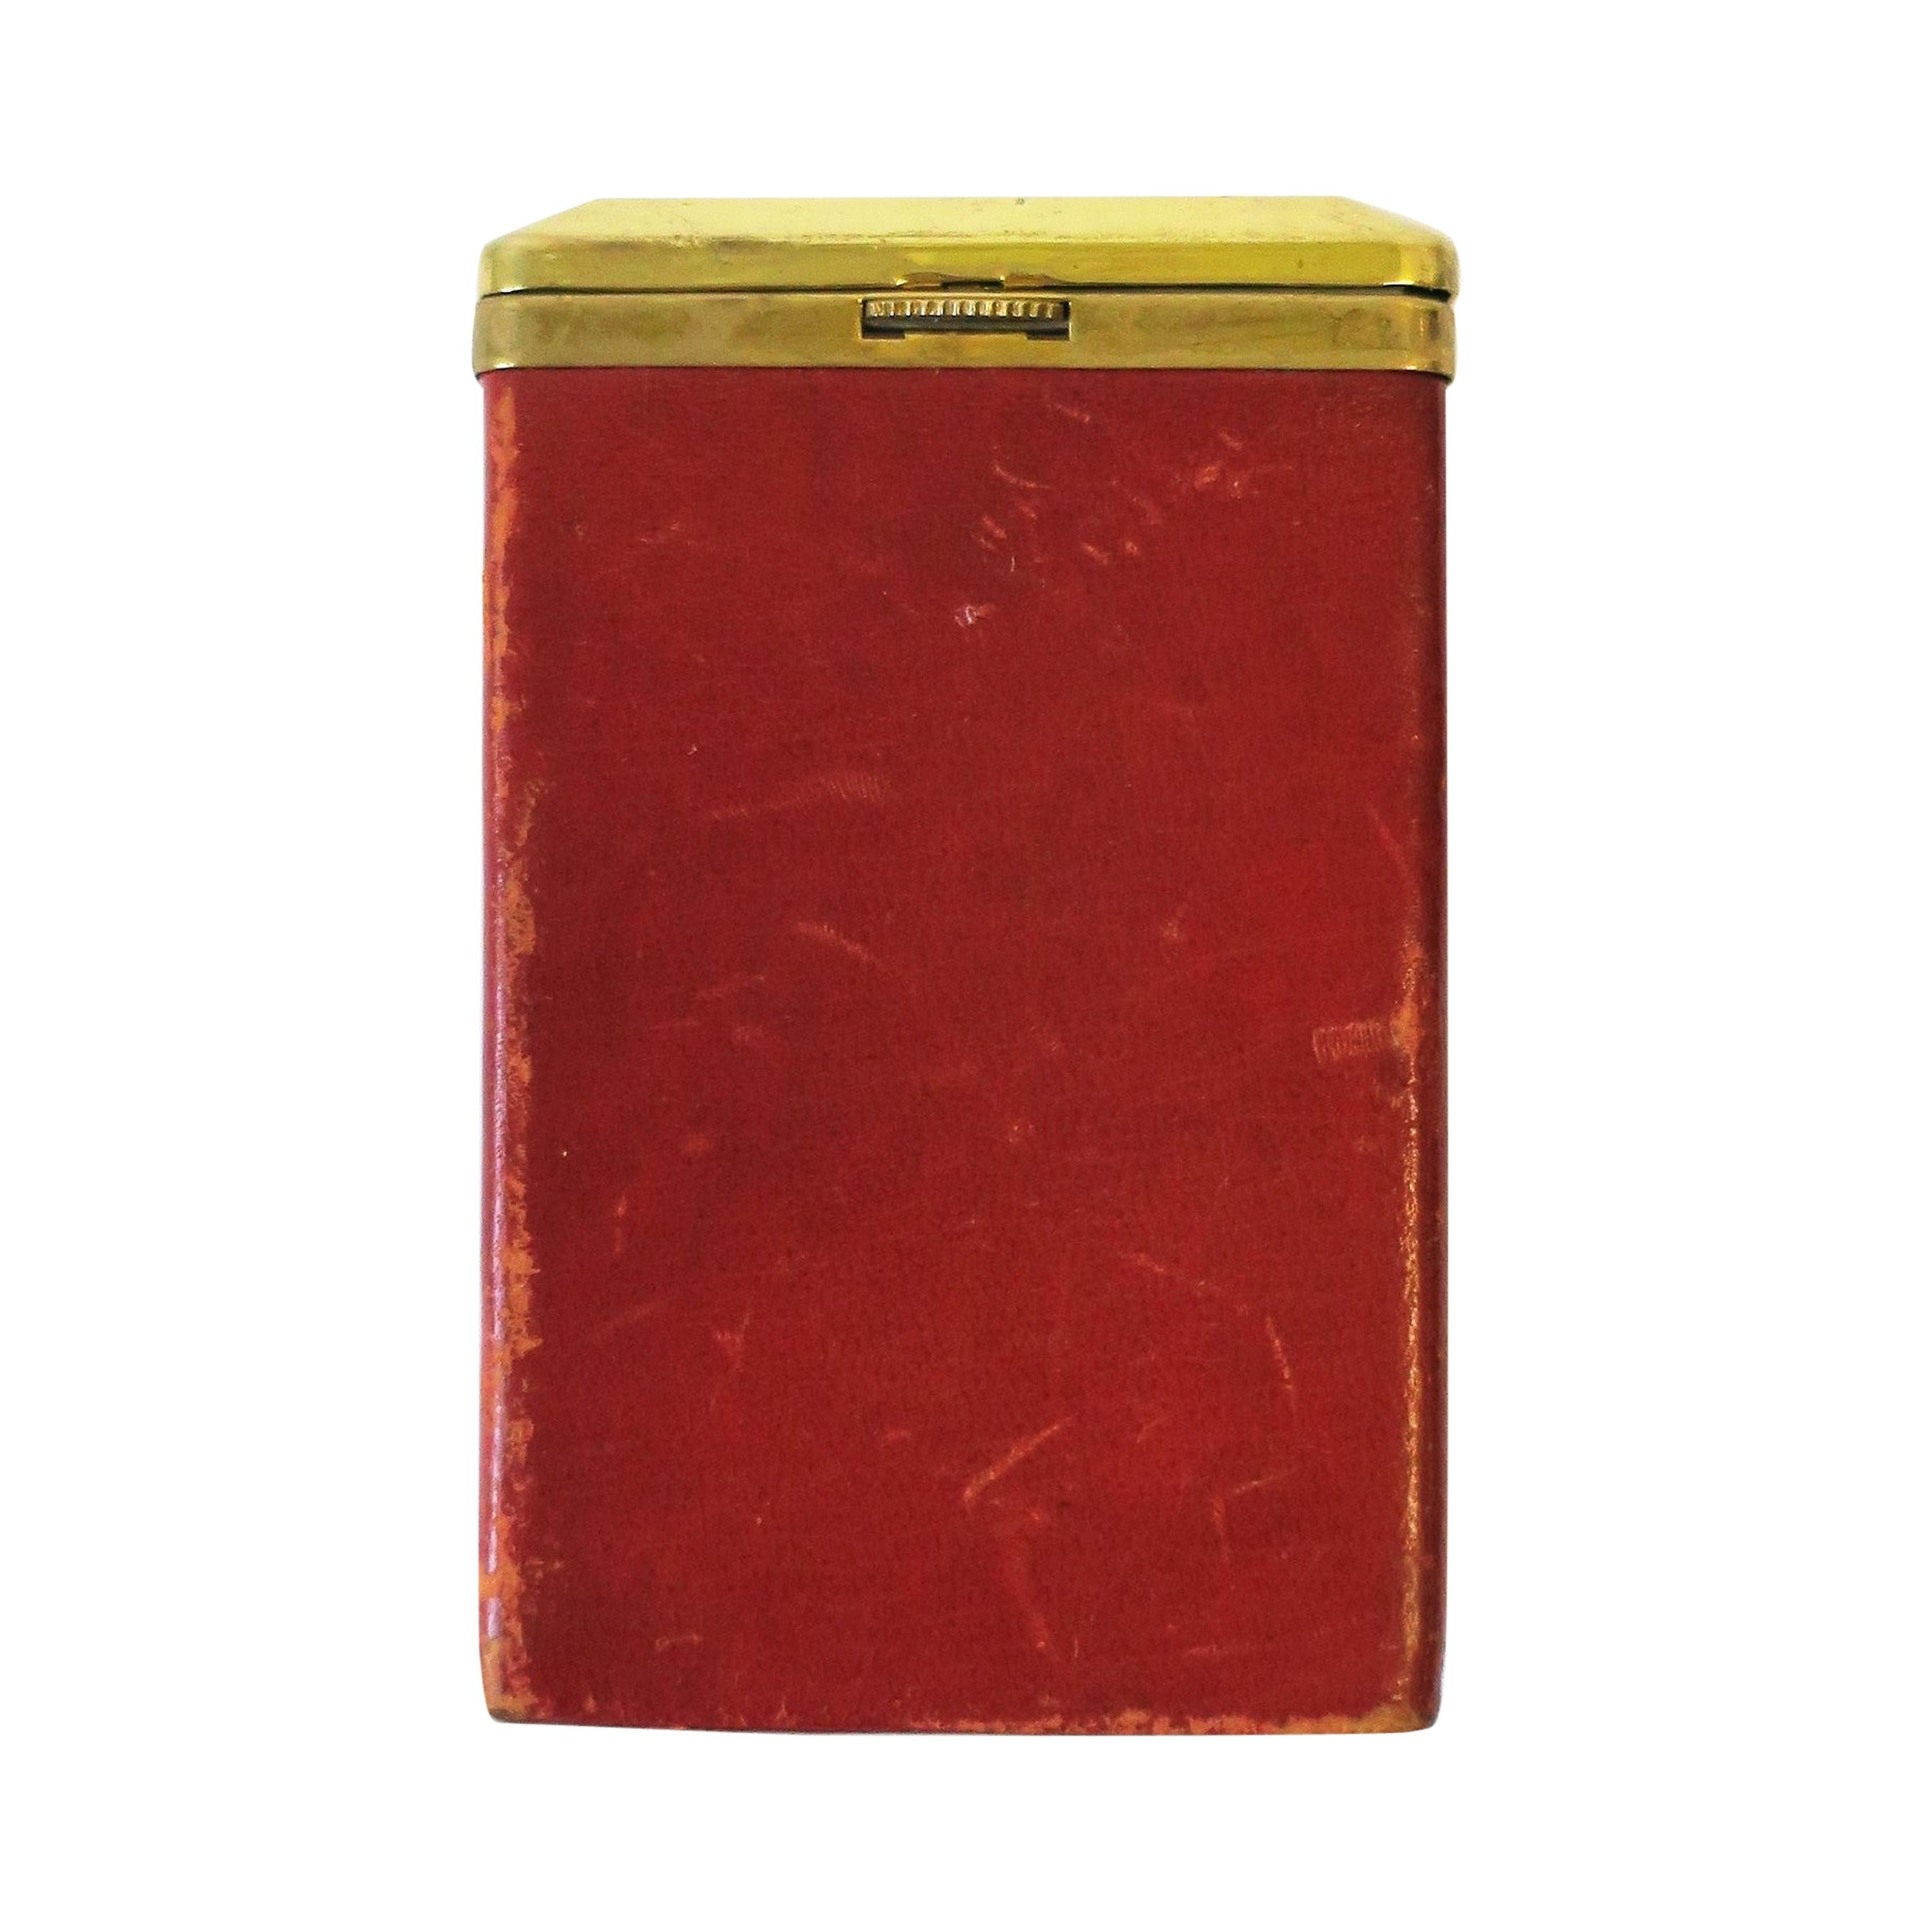 Euro Red Leather and Brass Cigarette Holder Case or Box